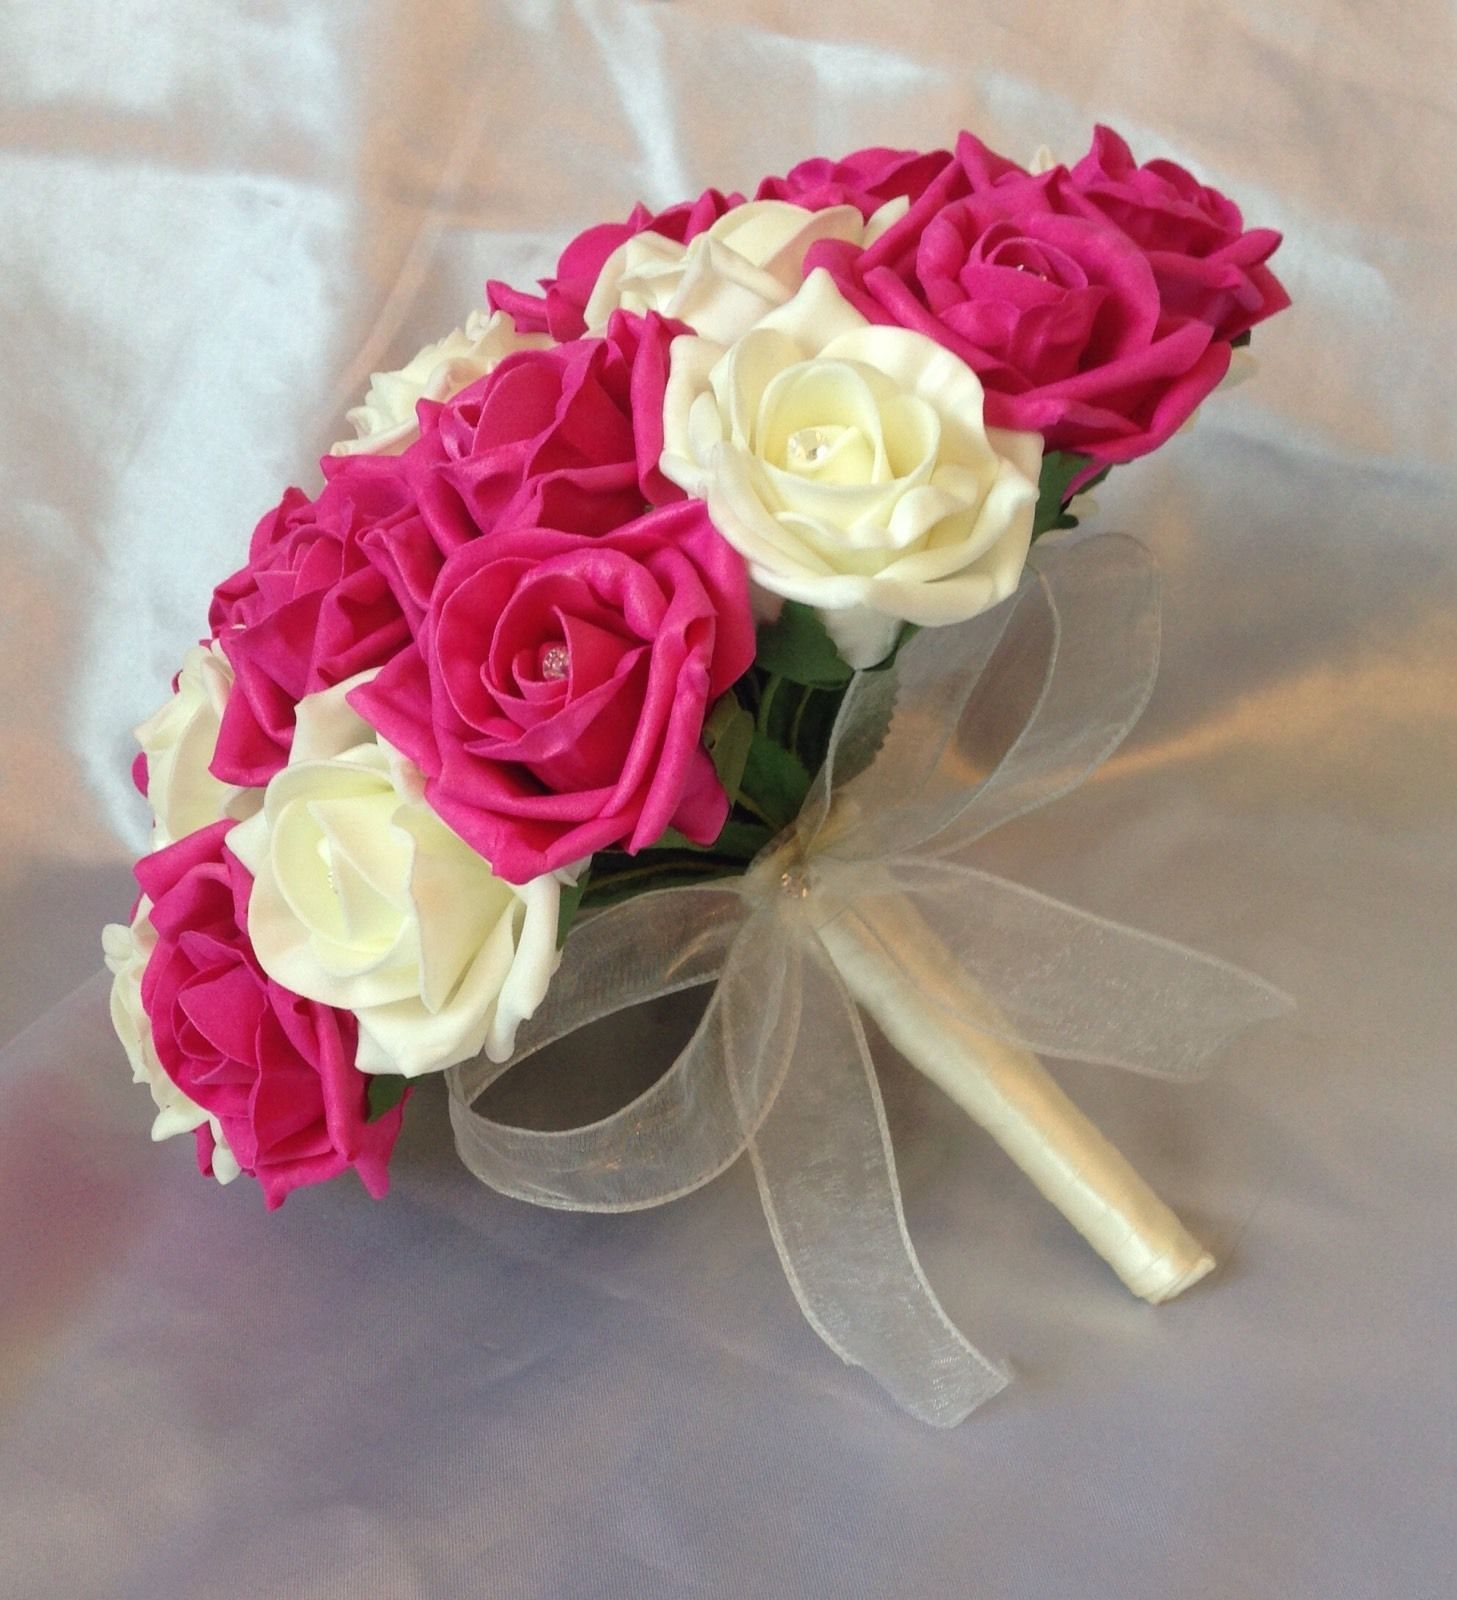 Dark Pink Wedding Flowers: ARTIFICIAL FLOWERS HOT PINK IVORY FOAM ROSE BRIDE WEDDING